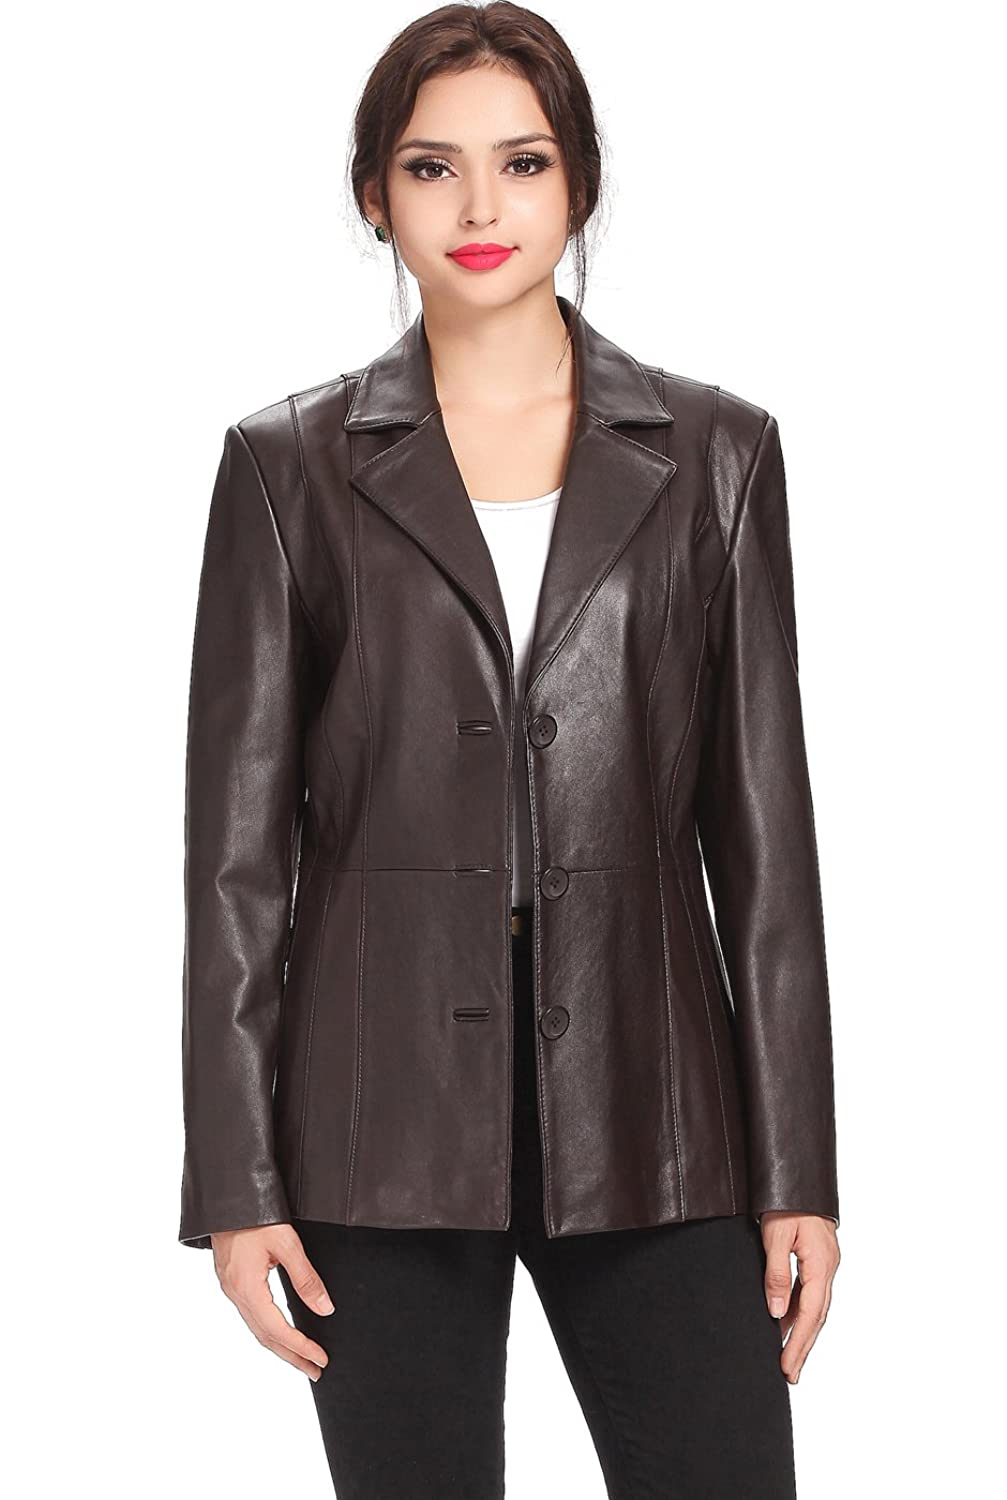 BGSD Women&39s &quotCrystal&quot MIssy &amp Plus Size New Zealand Lambskin